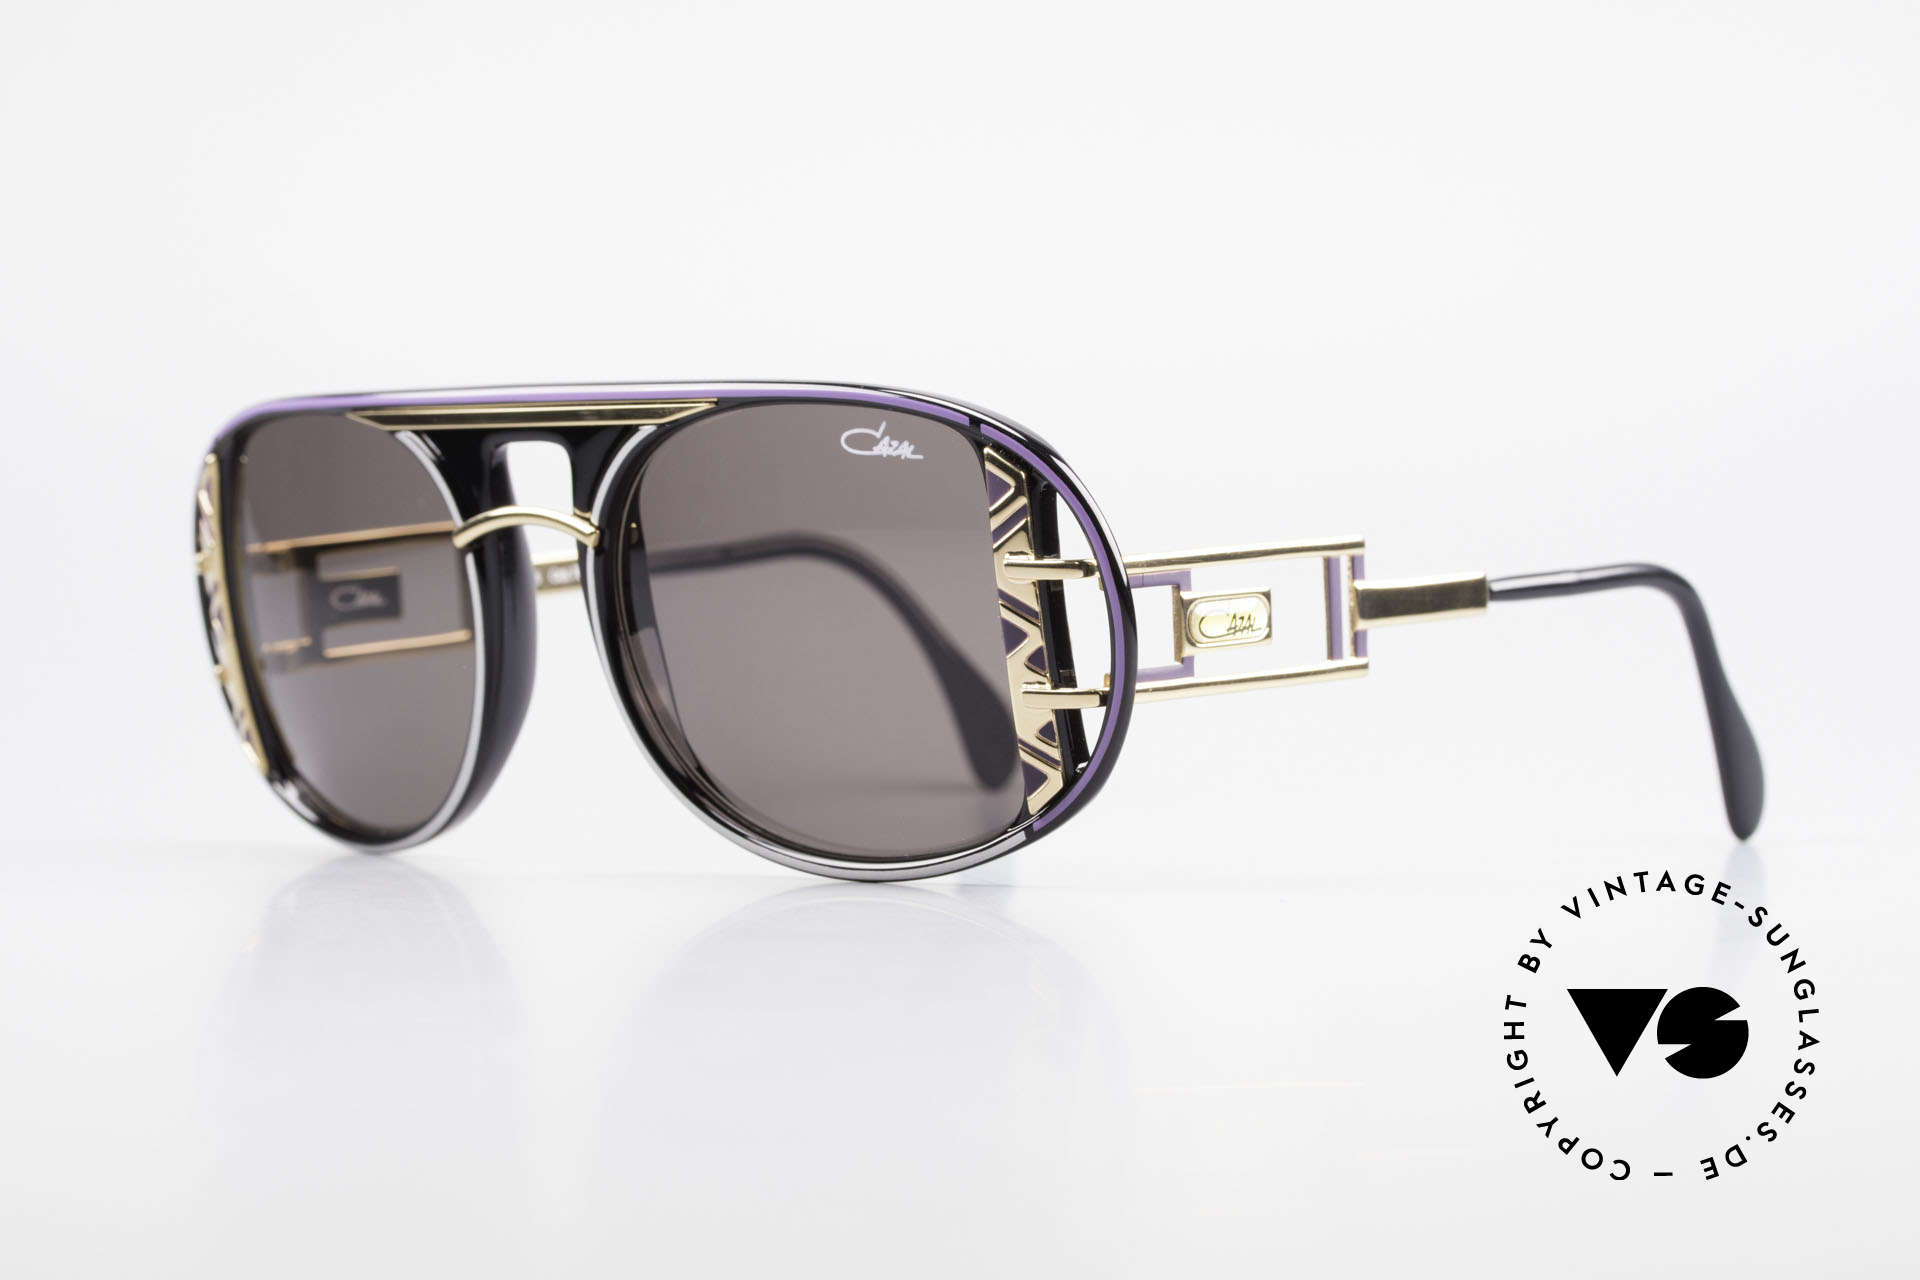 Cazal 875 Extraordinary Sunglasses 90's, unique quality & complex coloring - just vintage!, Made for Men and Women